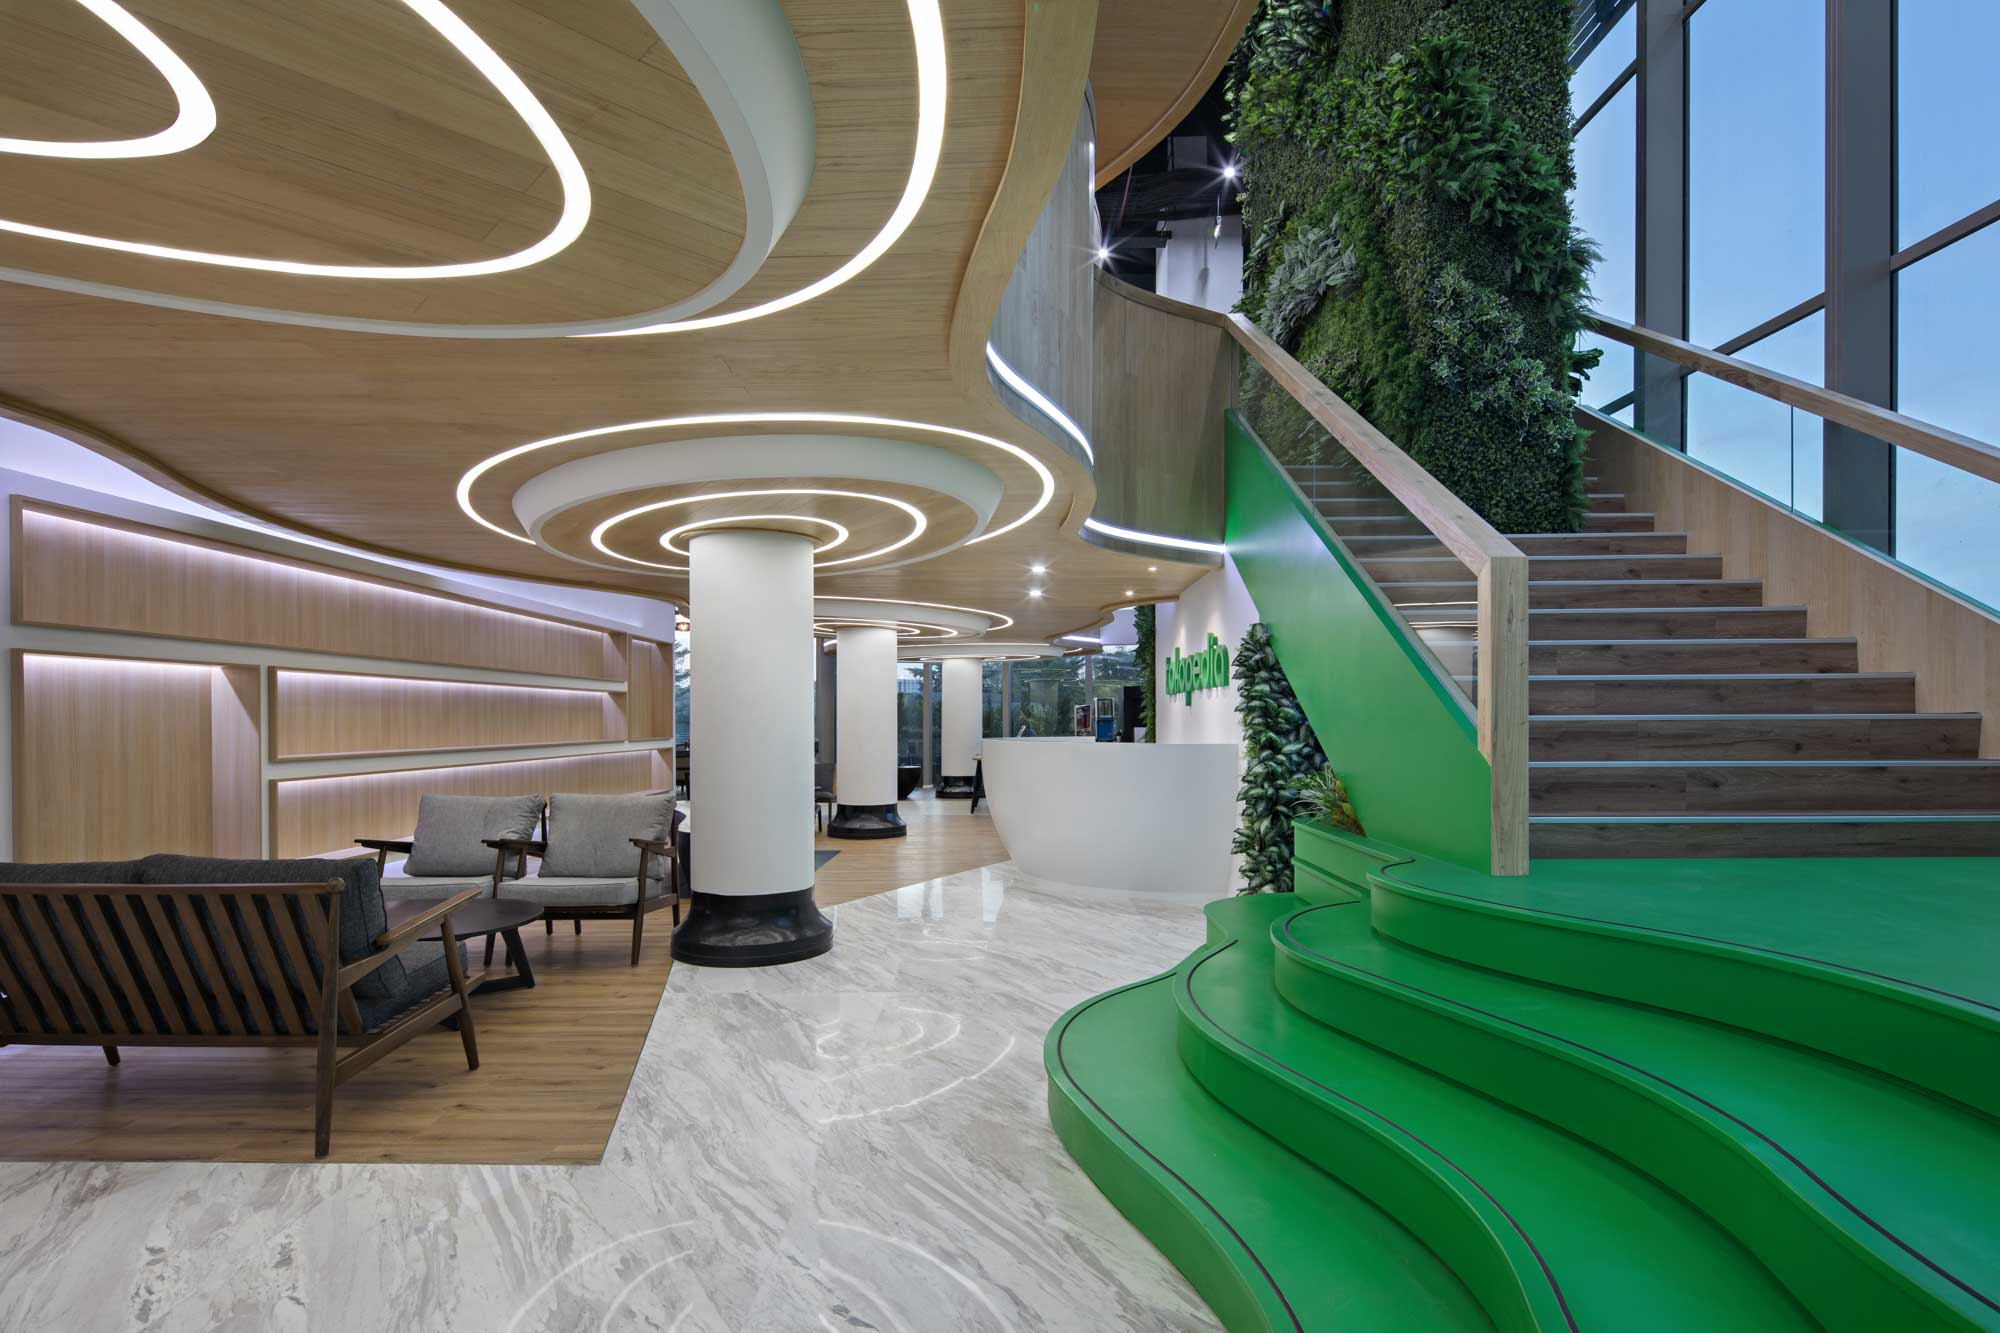 The lobby with internal staircase of the new Tokopedia Care office in Jakarta. Interior Design + Build by AVIP